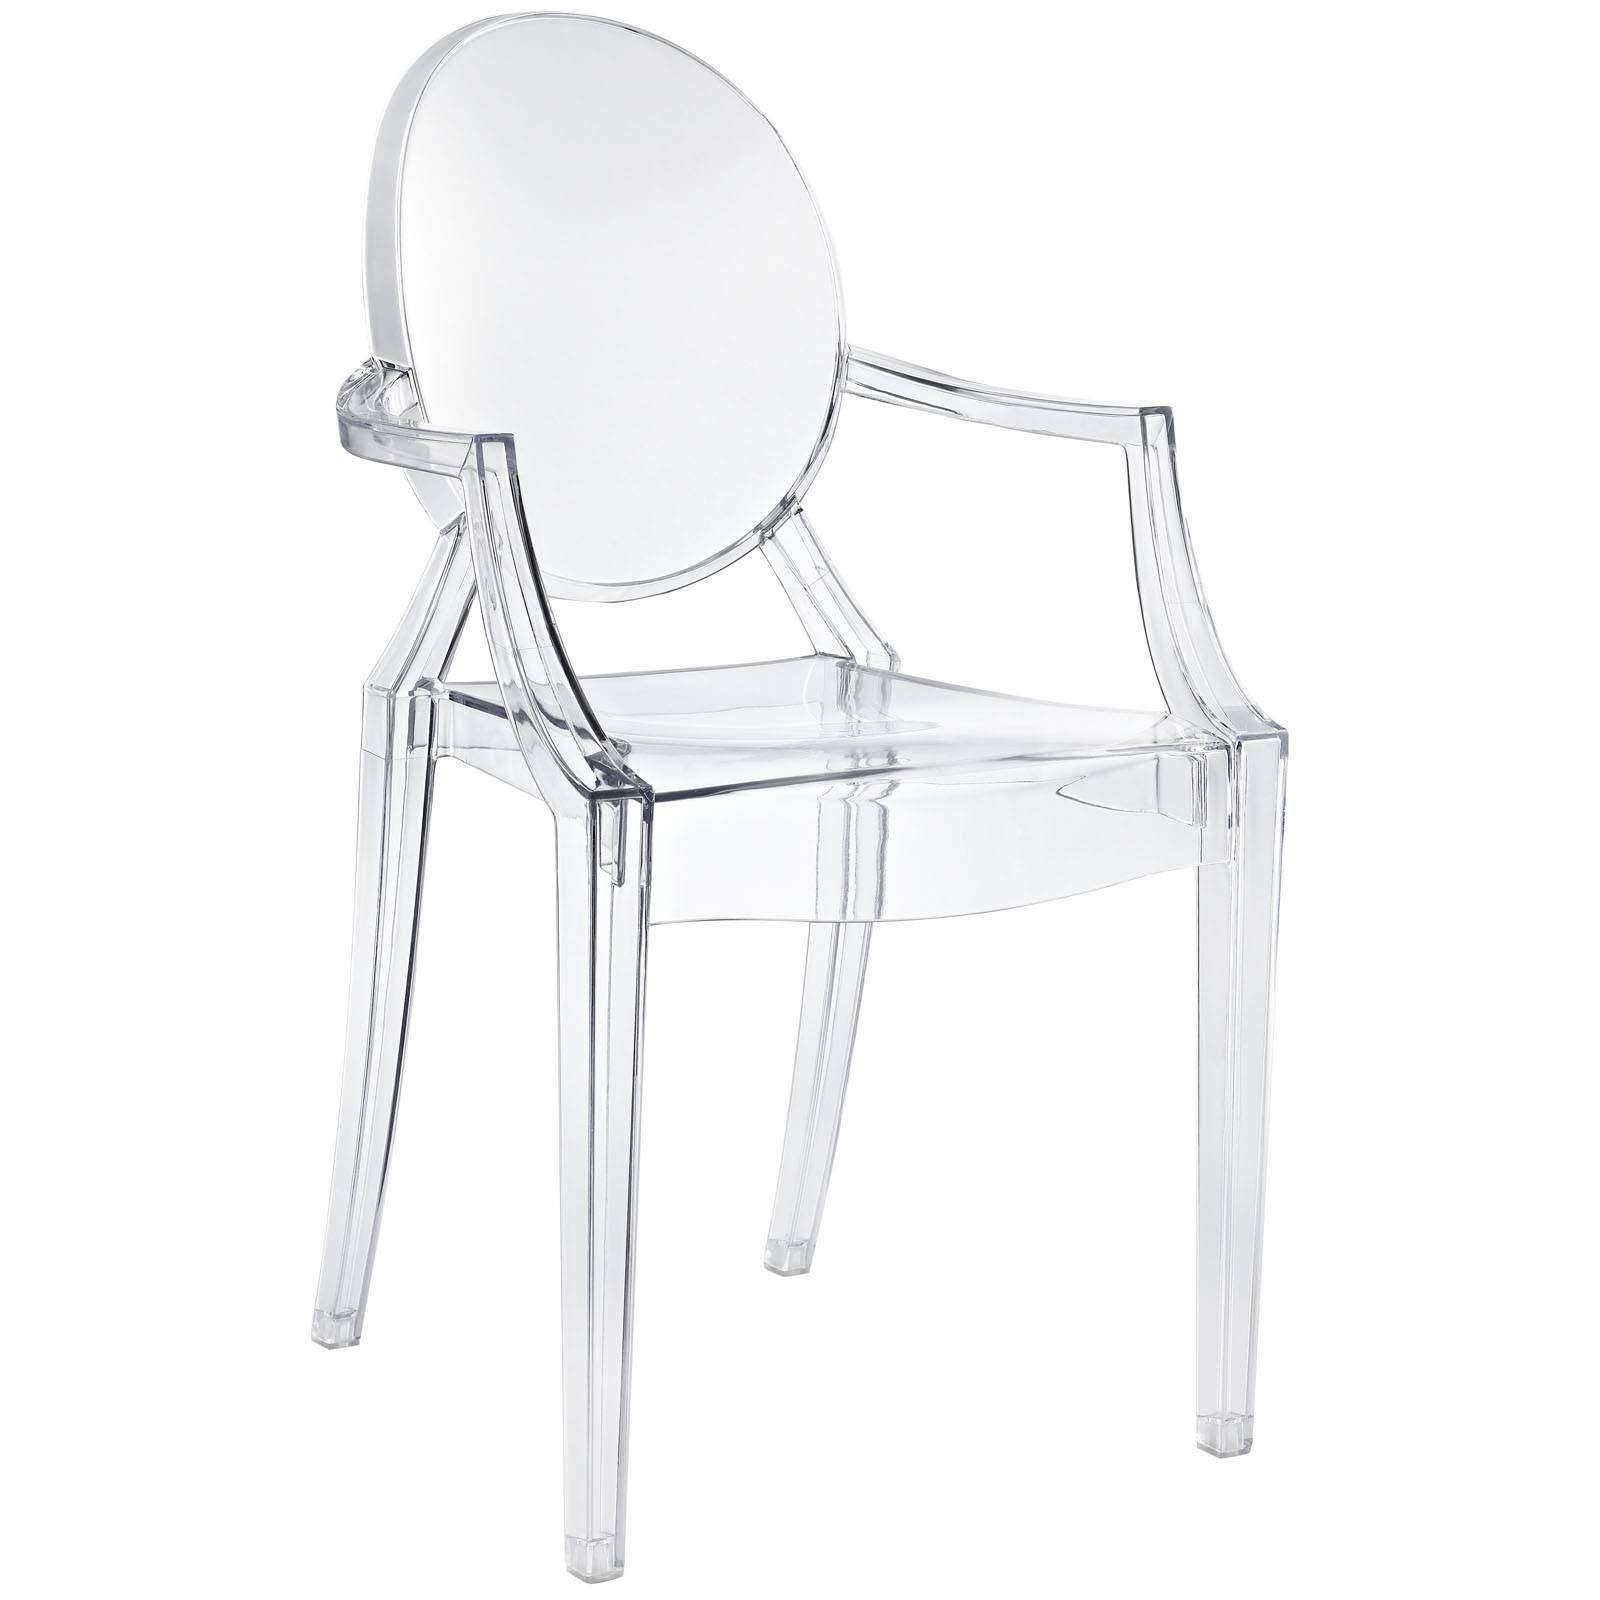 Philippe starck style louis ghost arm chair for Chaise louis ghost kartell